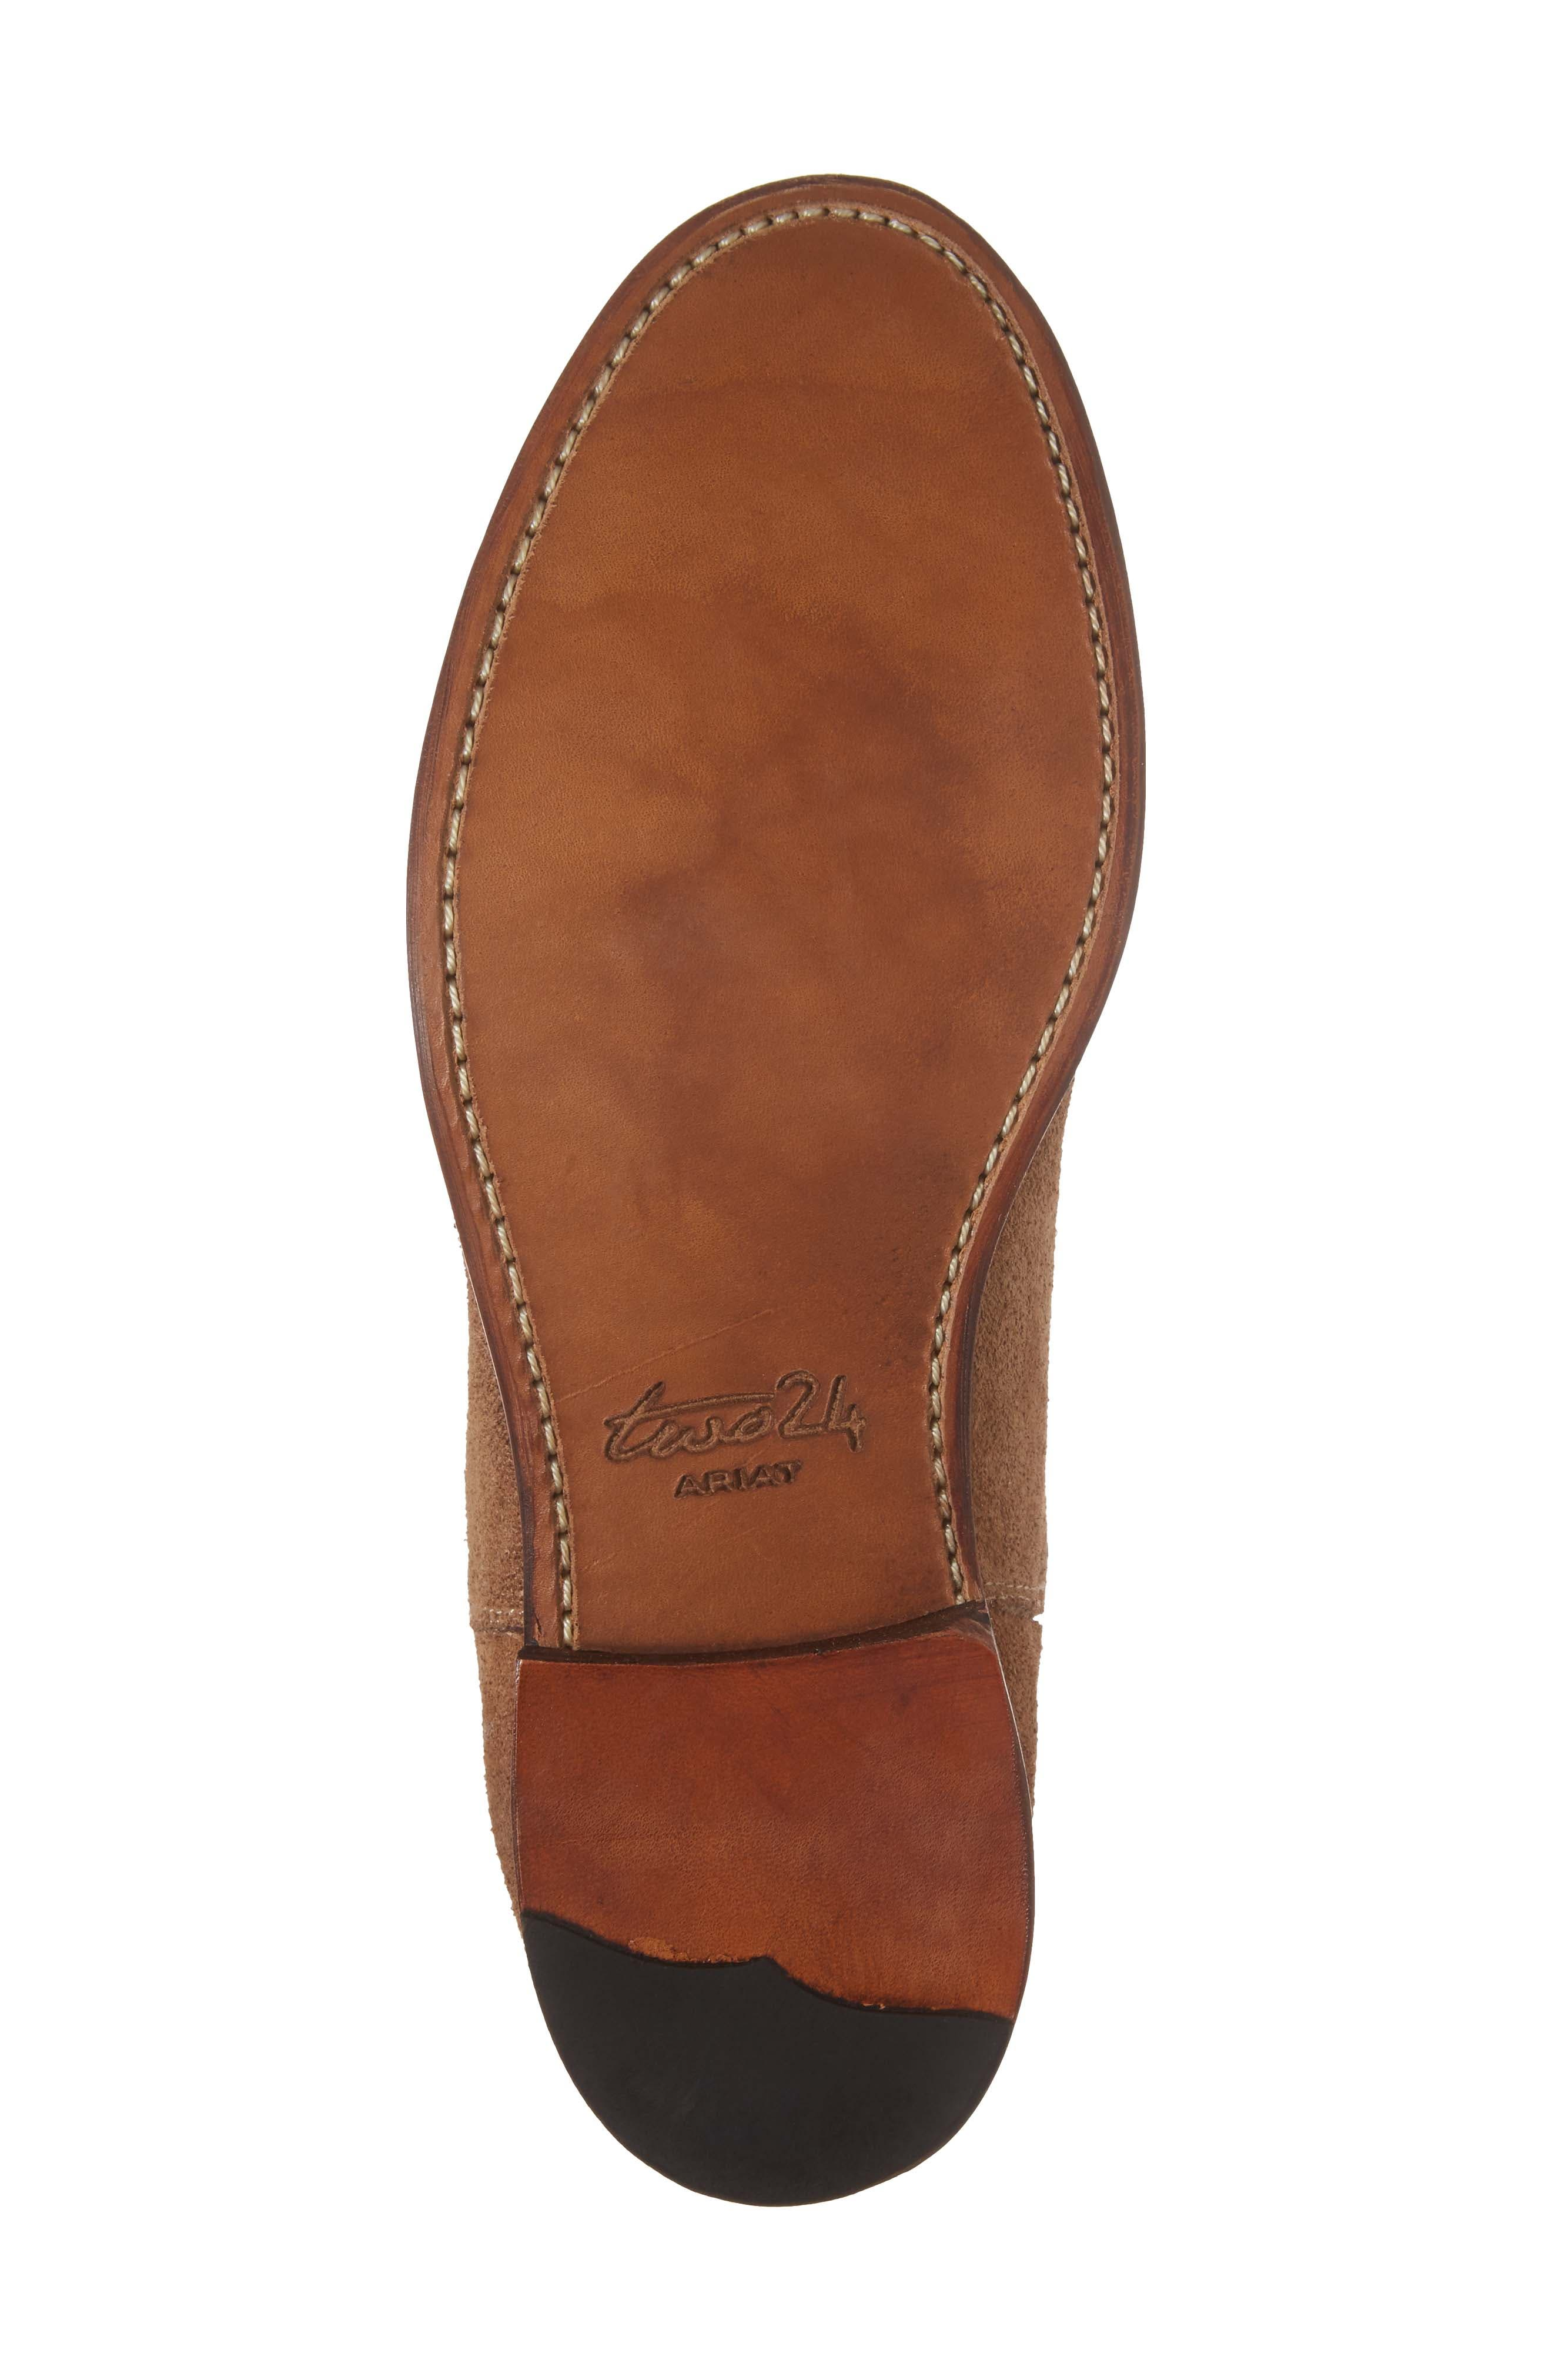 Ariat Maxwell Chelsea Boot,                             Alternate thumbnail 6, color,                             Amaretto Suede